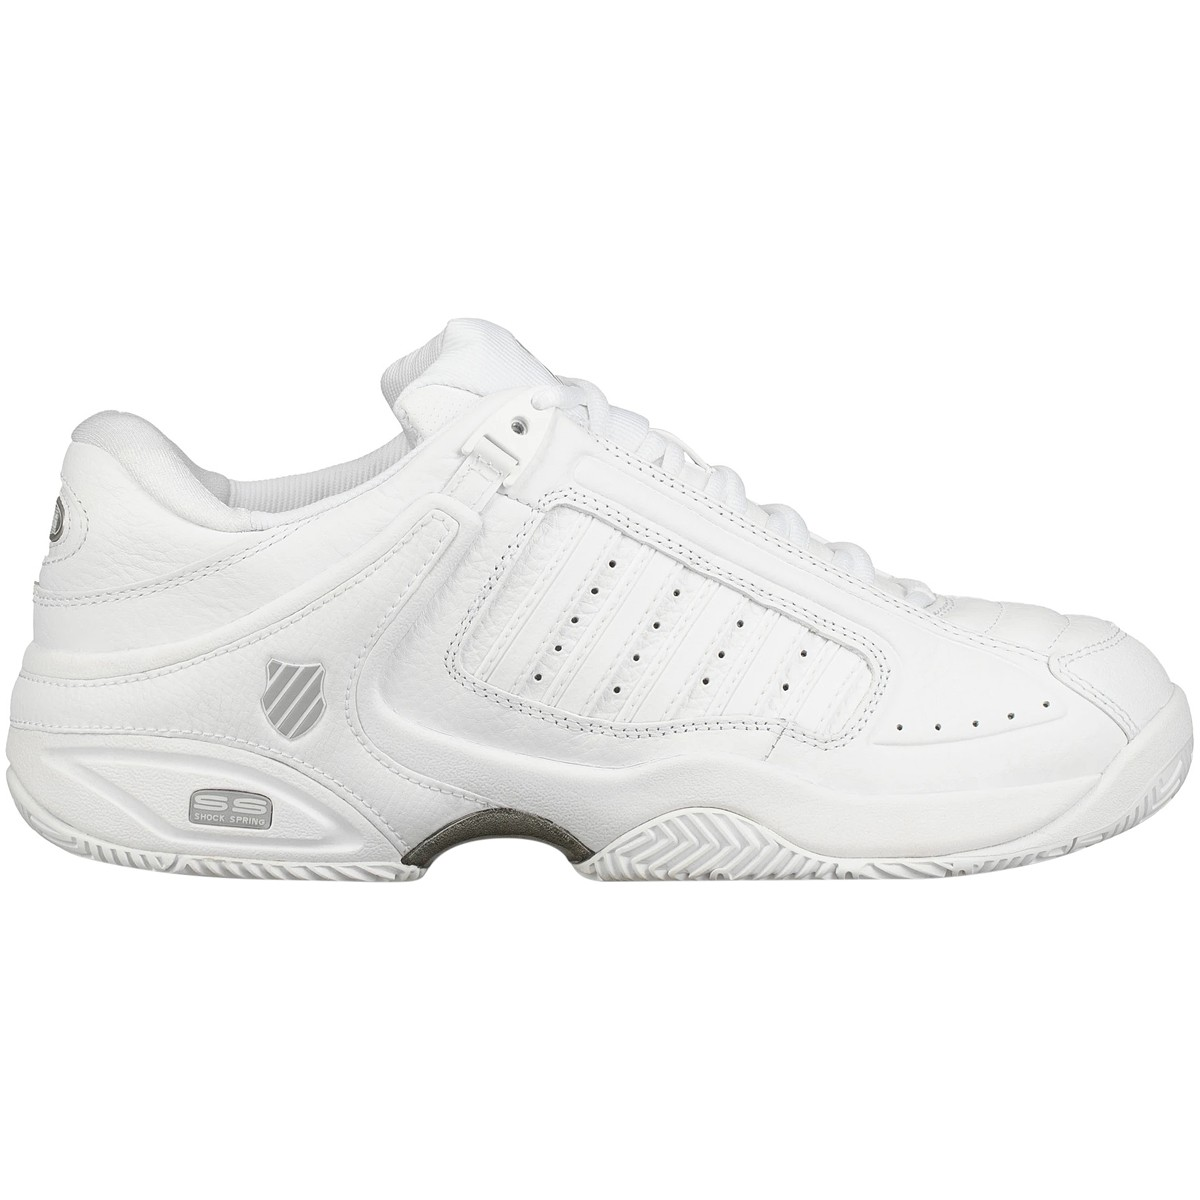 K-SWISS DEFIER RS ALL COURT SHOES - K